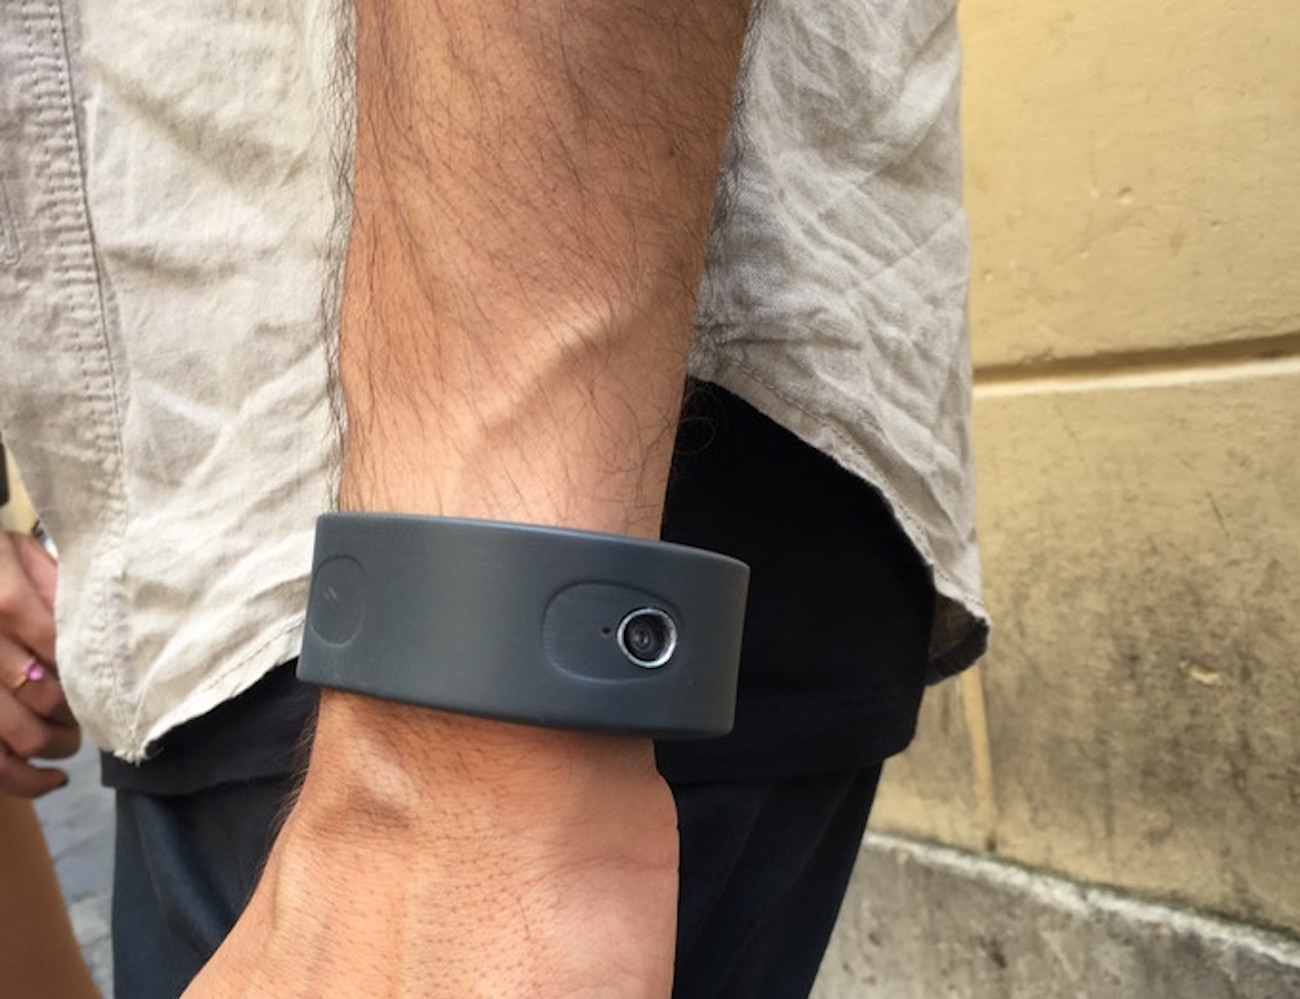 Cleep Wearable Wrist Camera